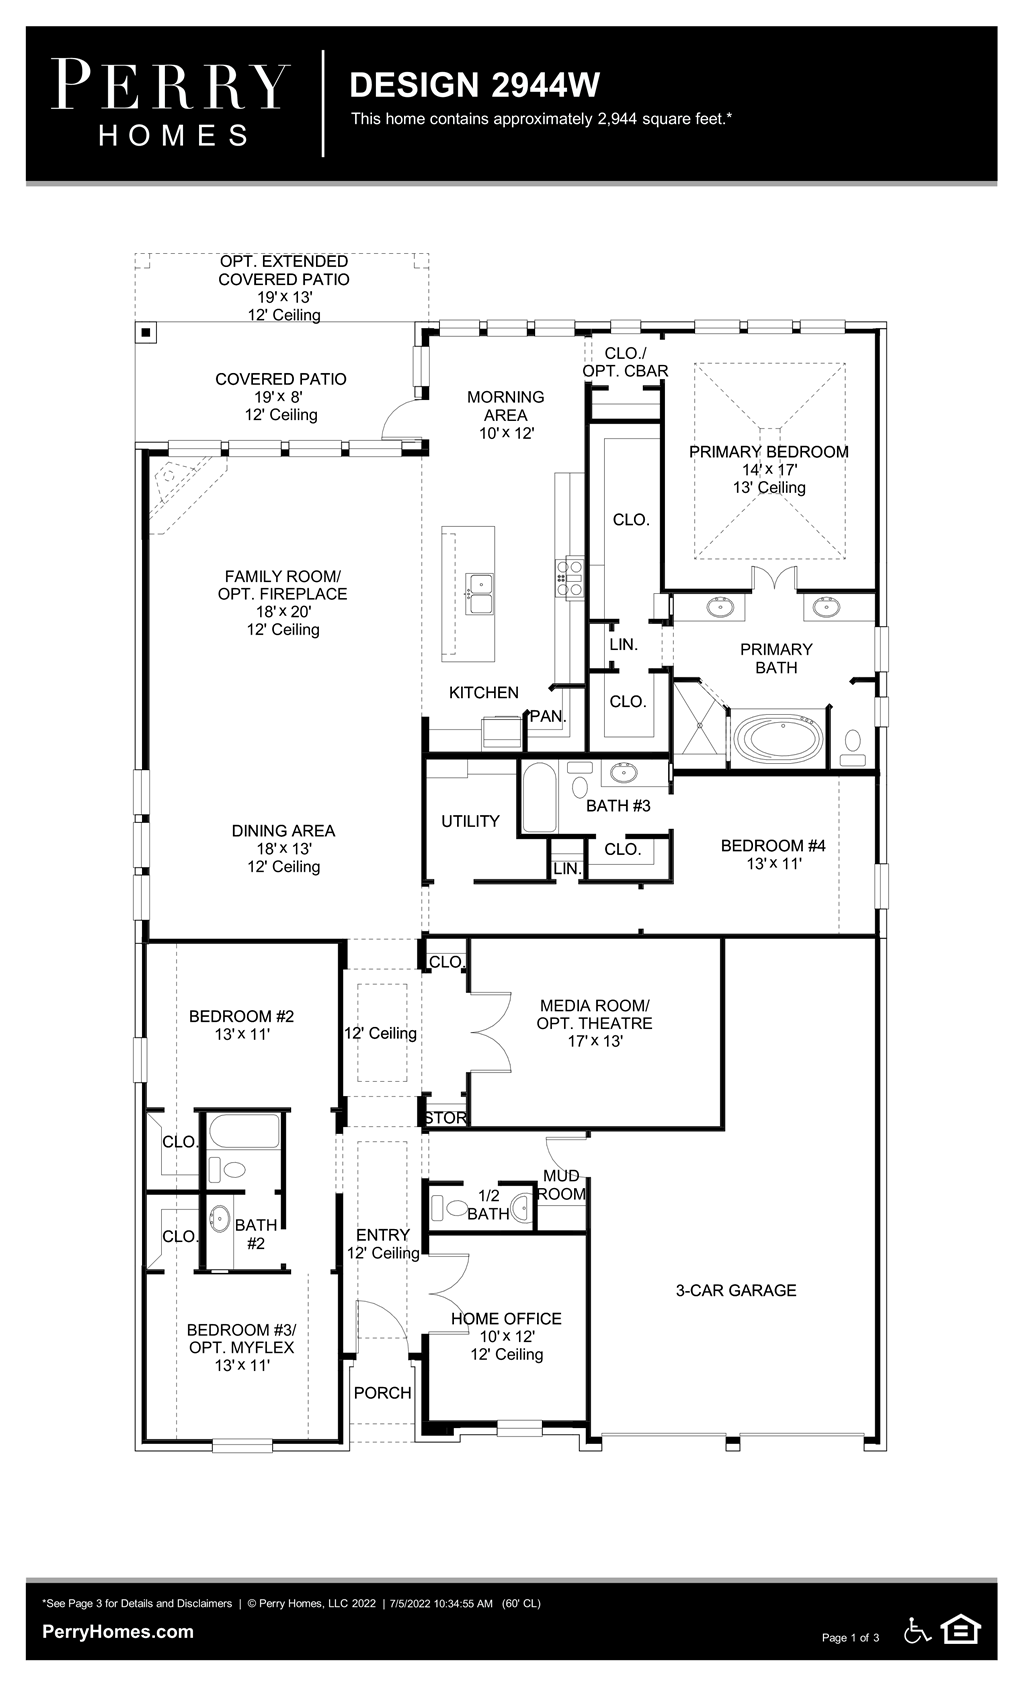 Floor Plan for 2944W